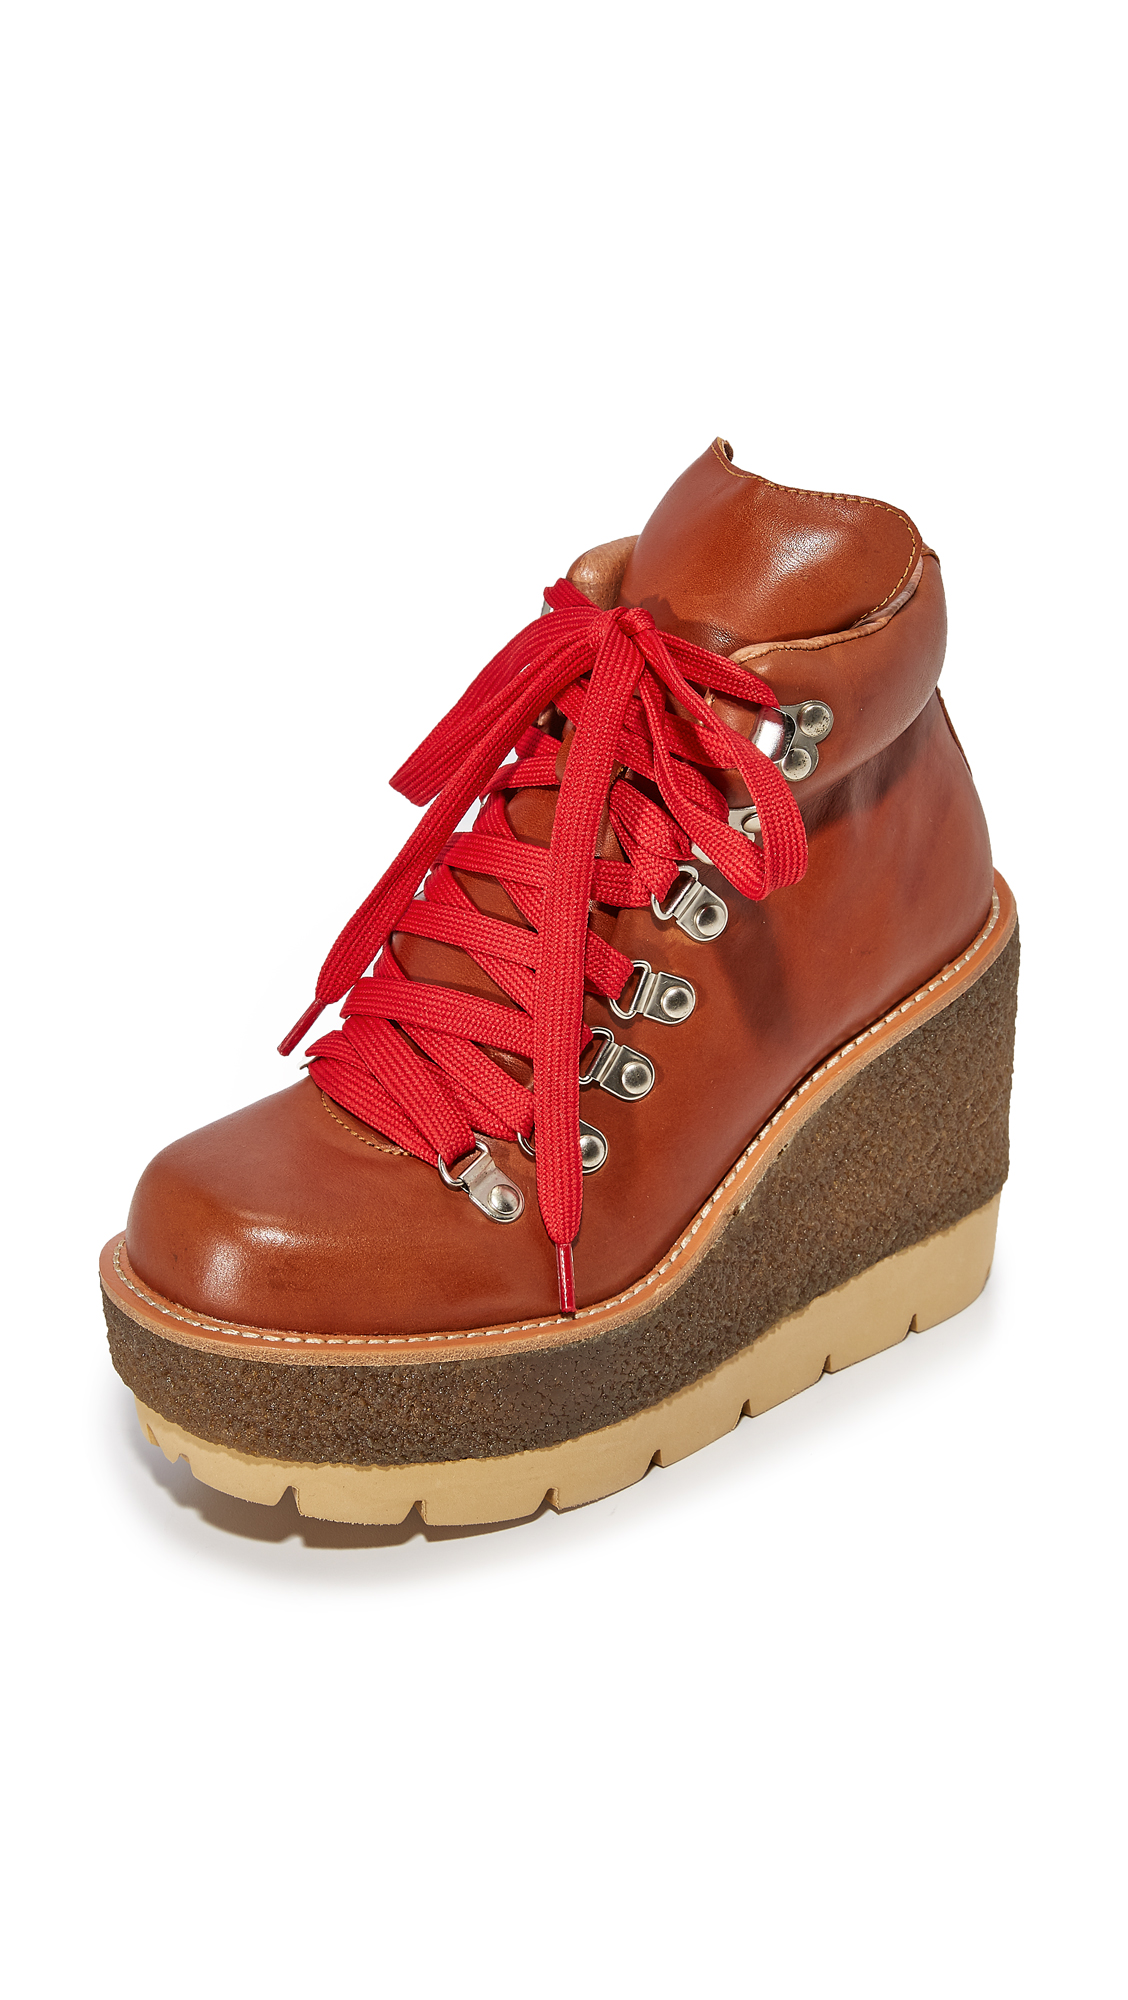 Jeffrey Campbell Explore Wedge Hiking Booties - Tan